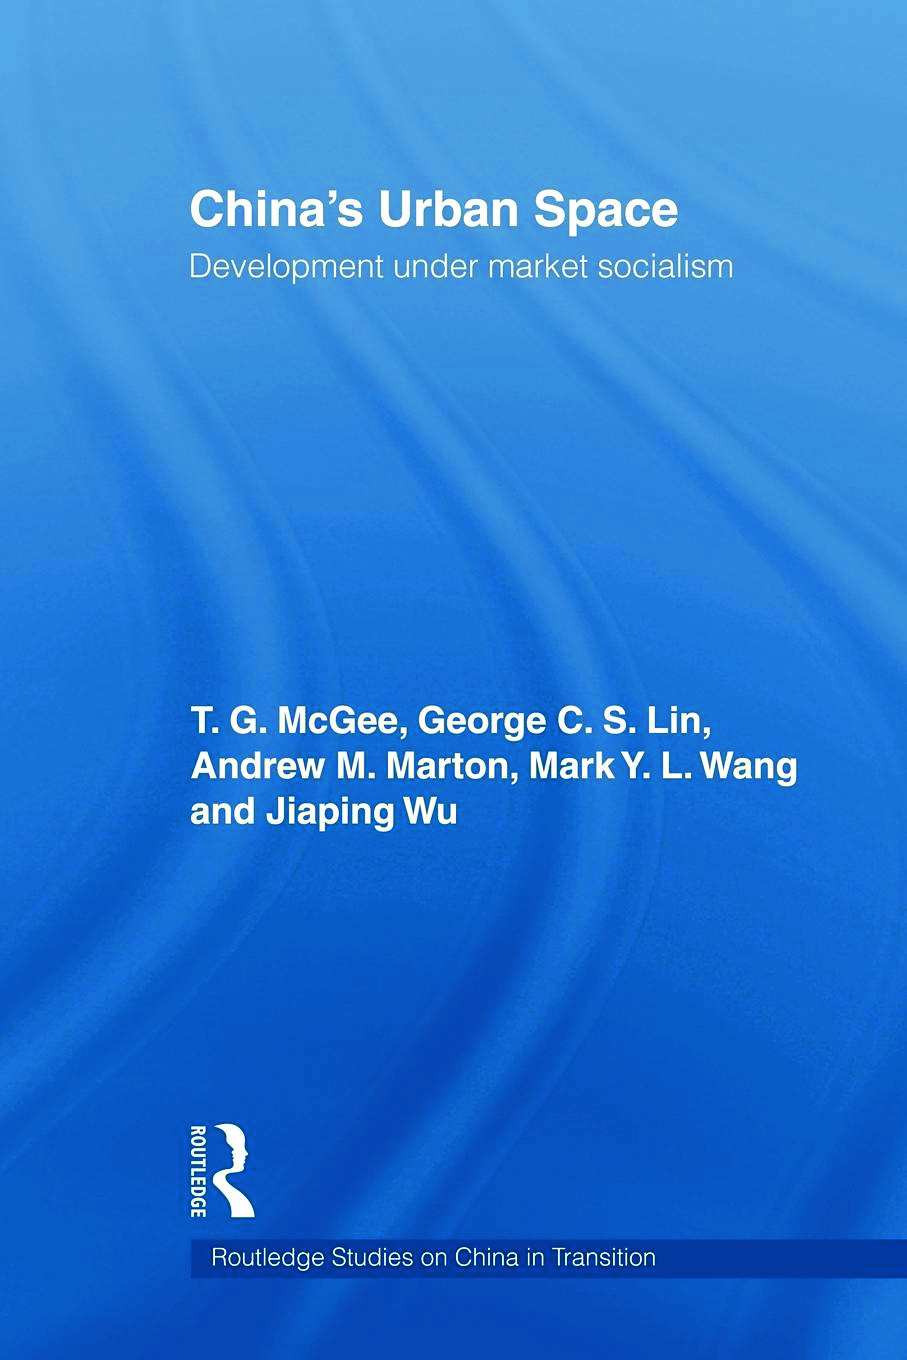 China's Urban Space: Development under market socialism book cover